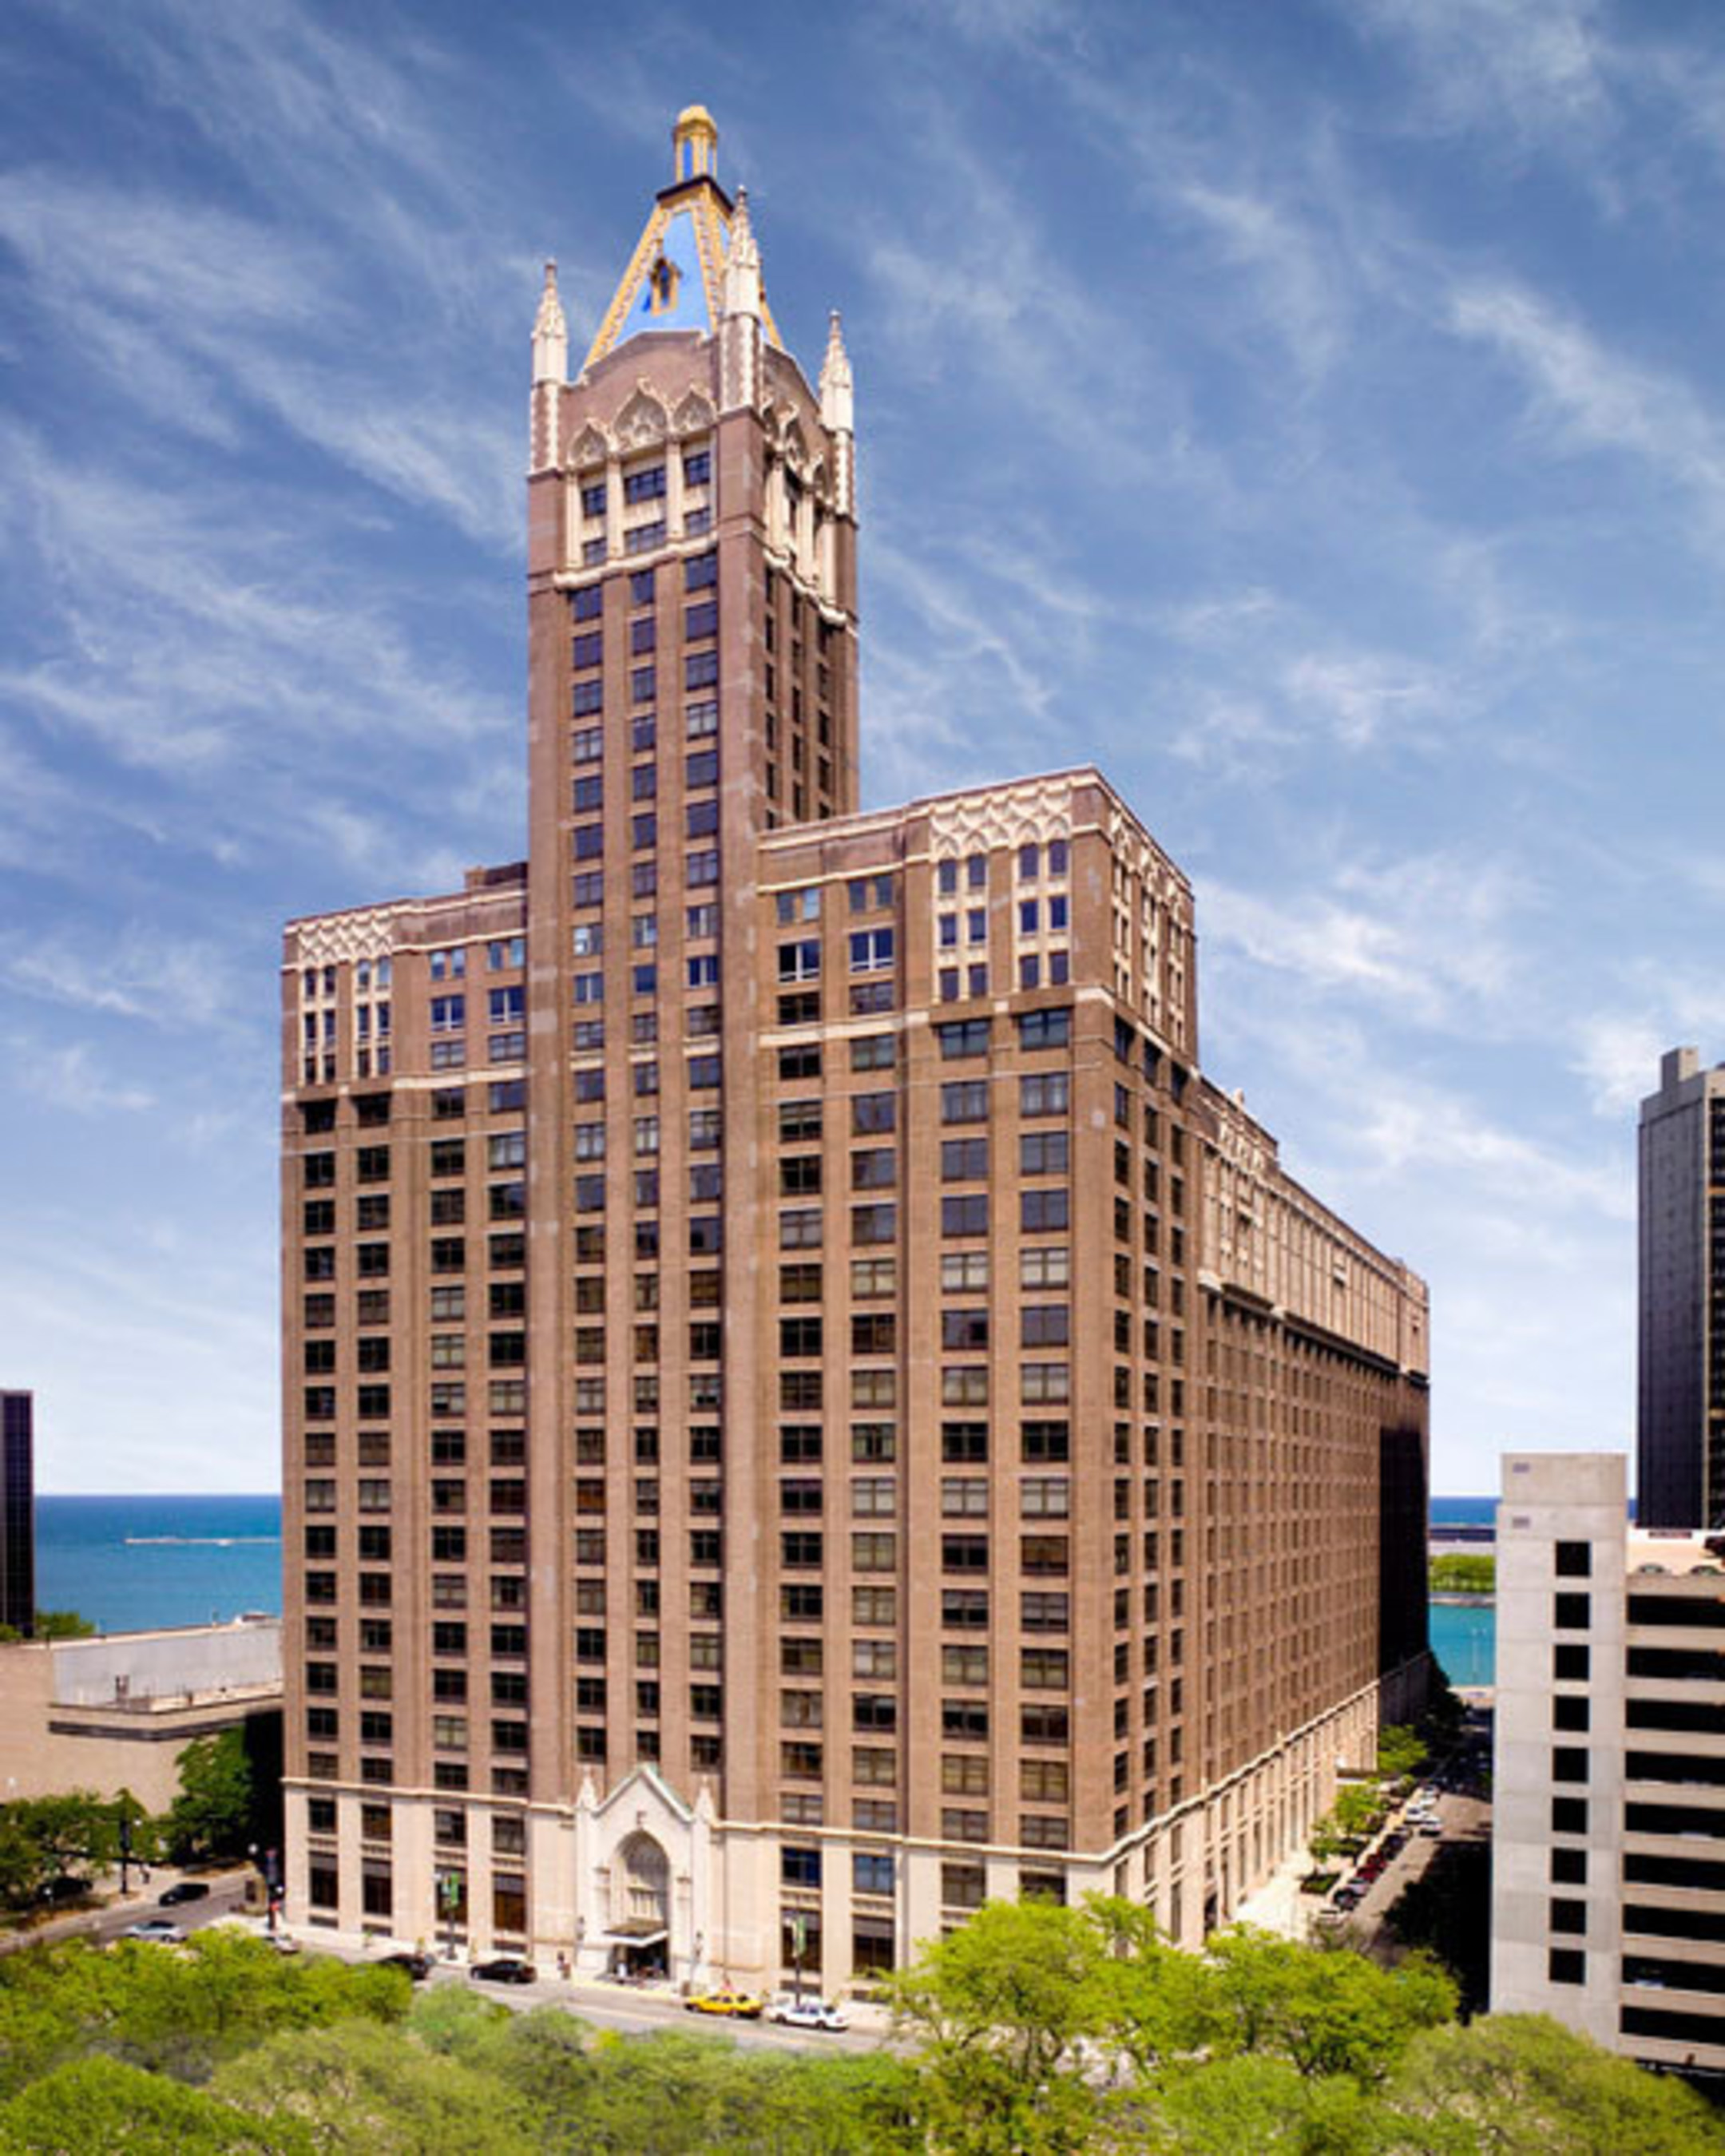 Positive Sobriety Institute in Chicago, Illinois